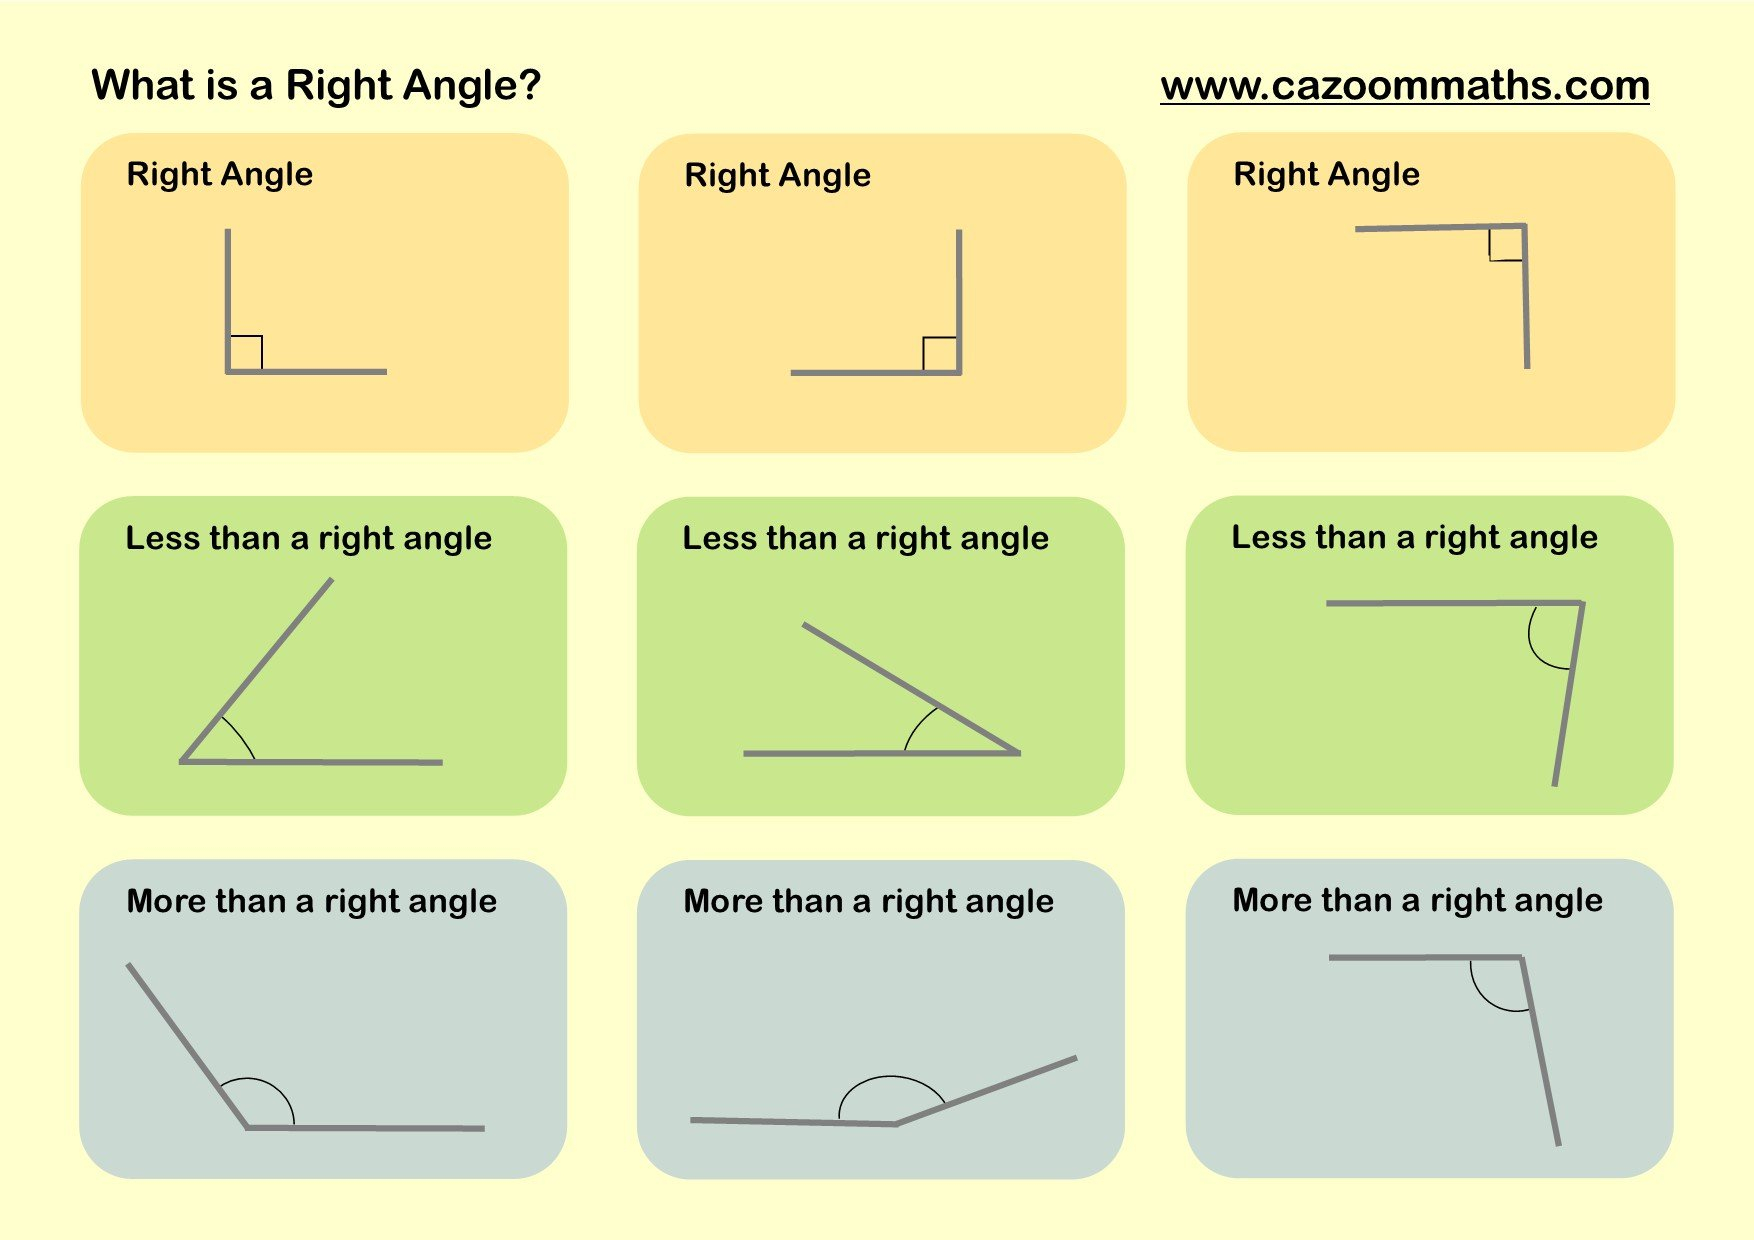 Lines And Angles Worksheets  Cazoom Maths Worksheets For Lines And Angles Worksheet